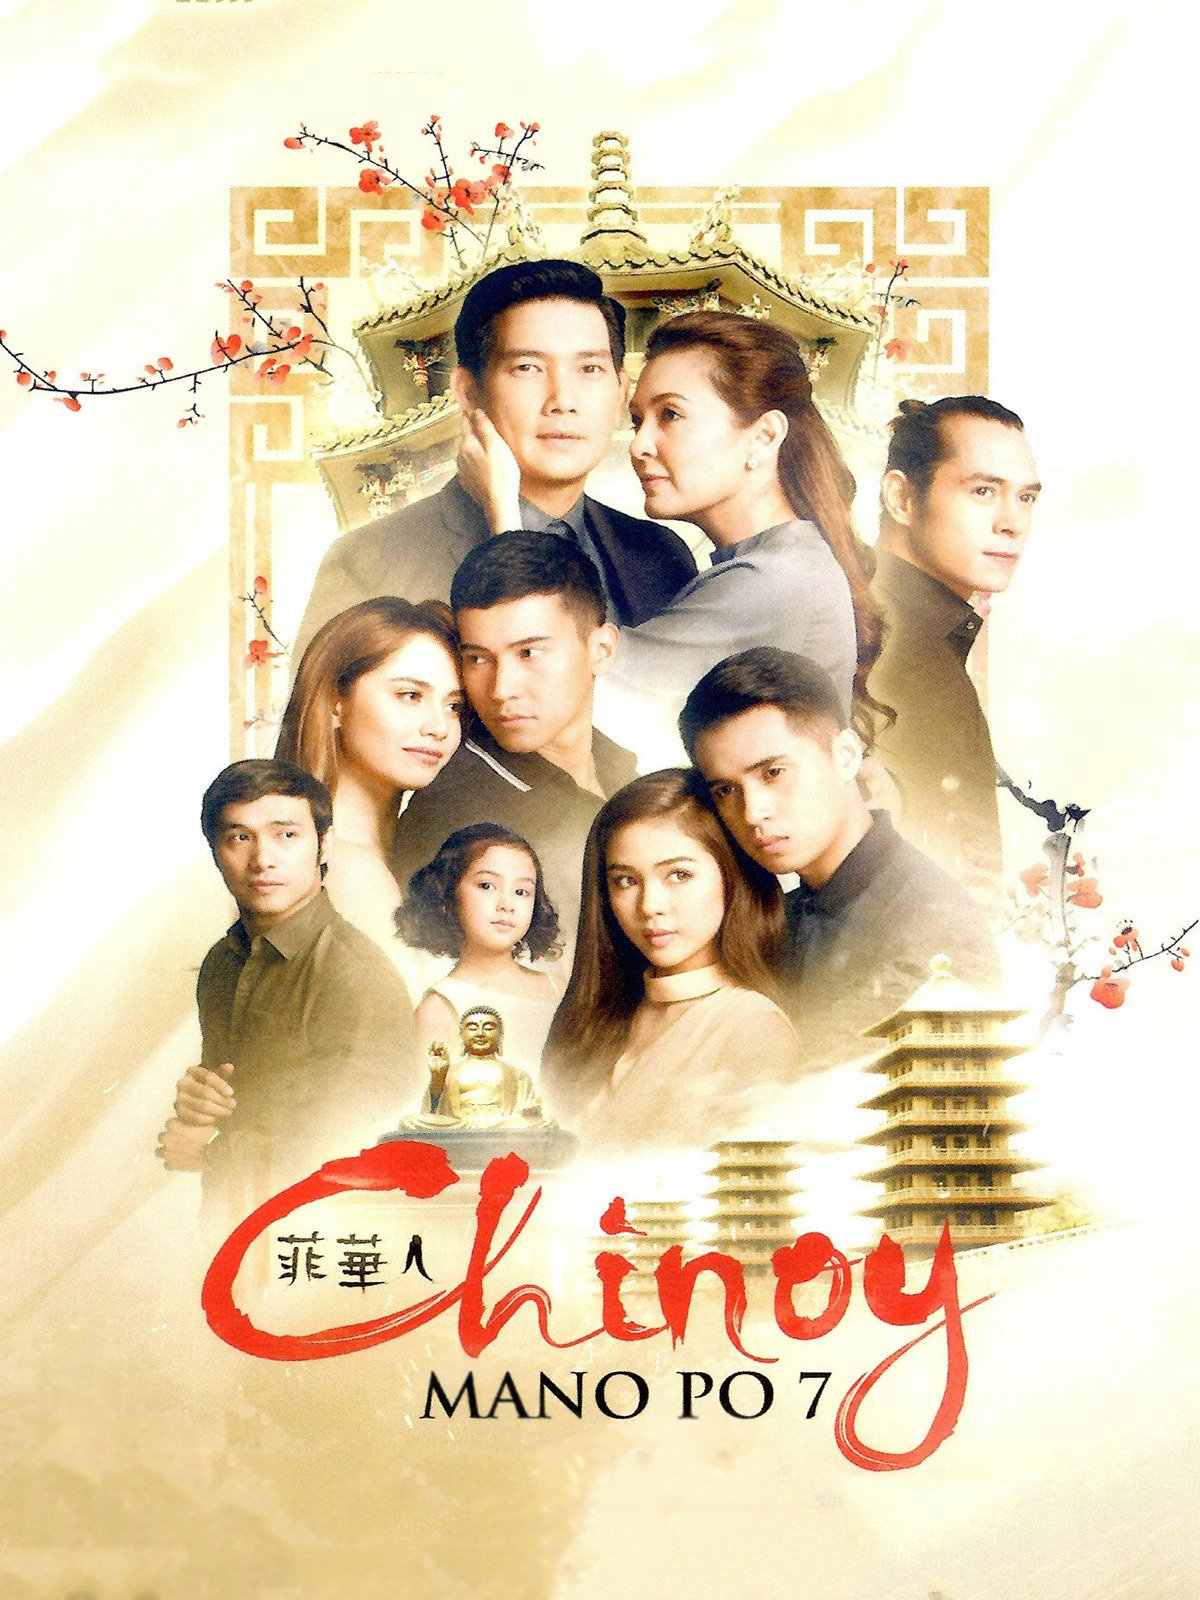 Mano Po 7 Chinoy on Amazon Prime Video UK